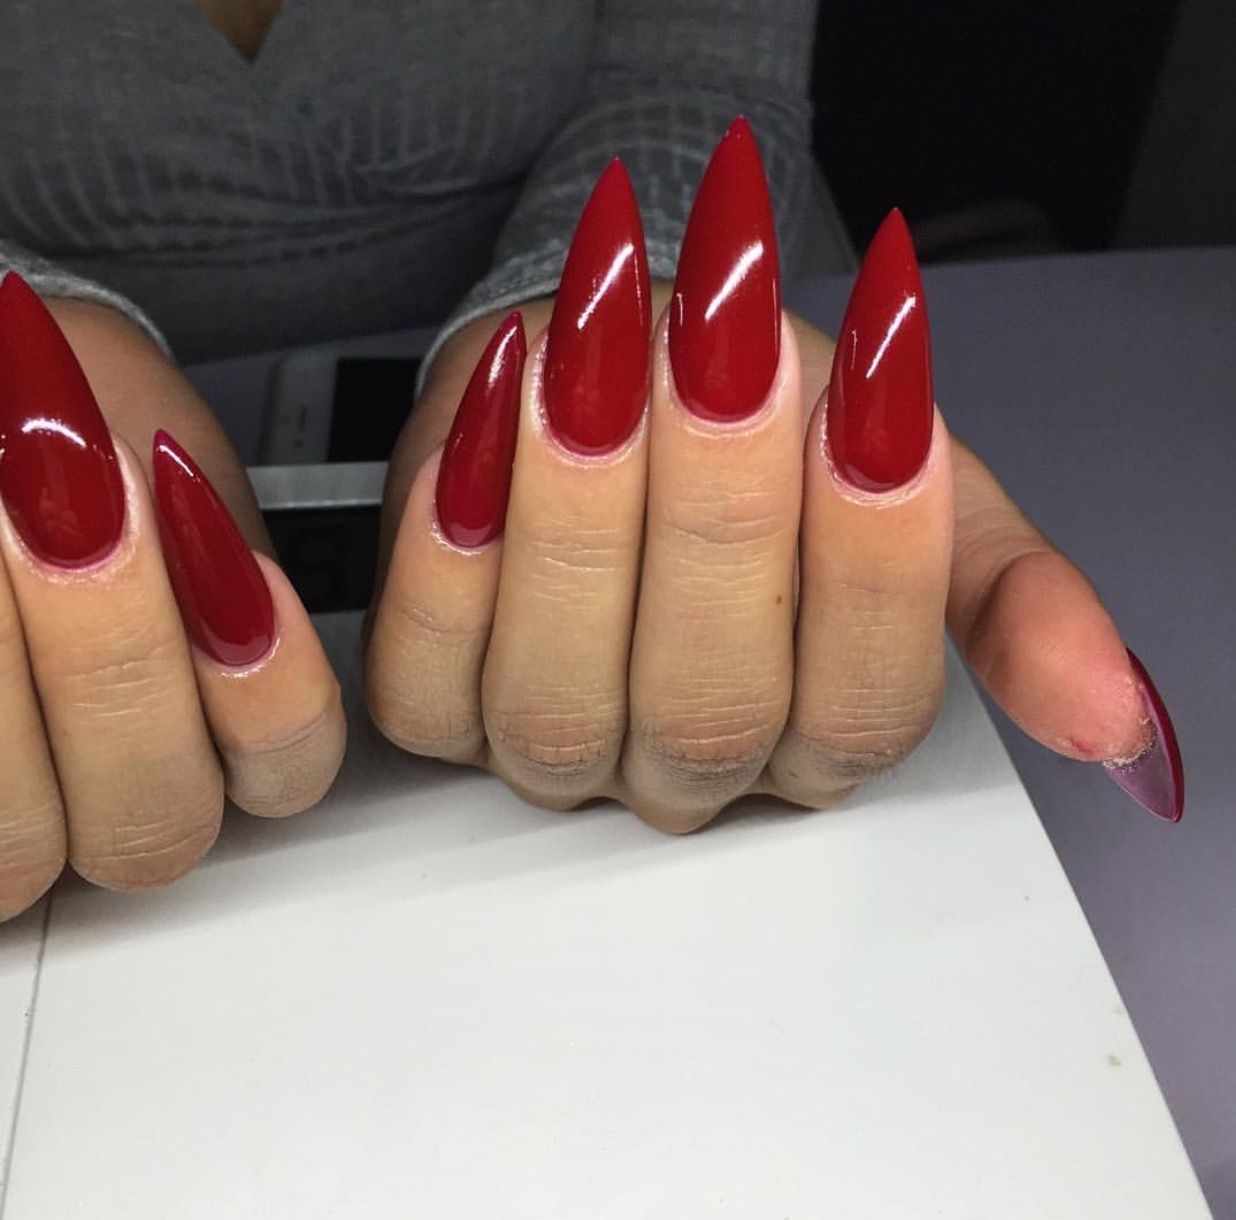 Red Stiletto Nails Red Stiletto Nails Acrylic Nails Stiletto Long Red Nails